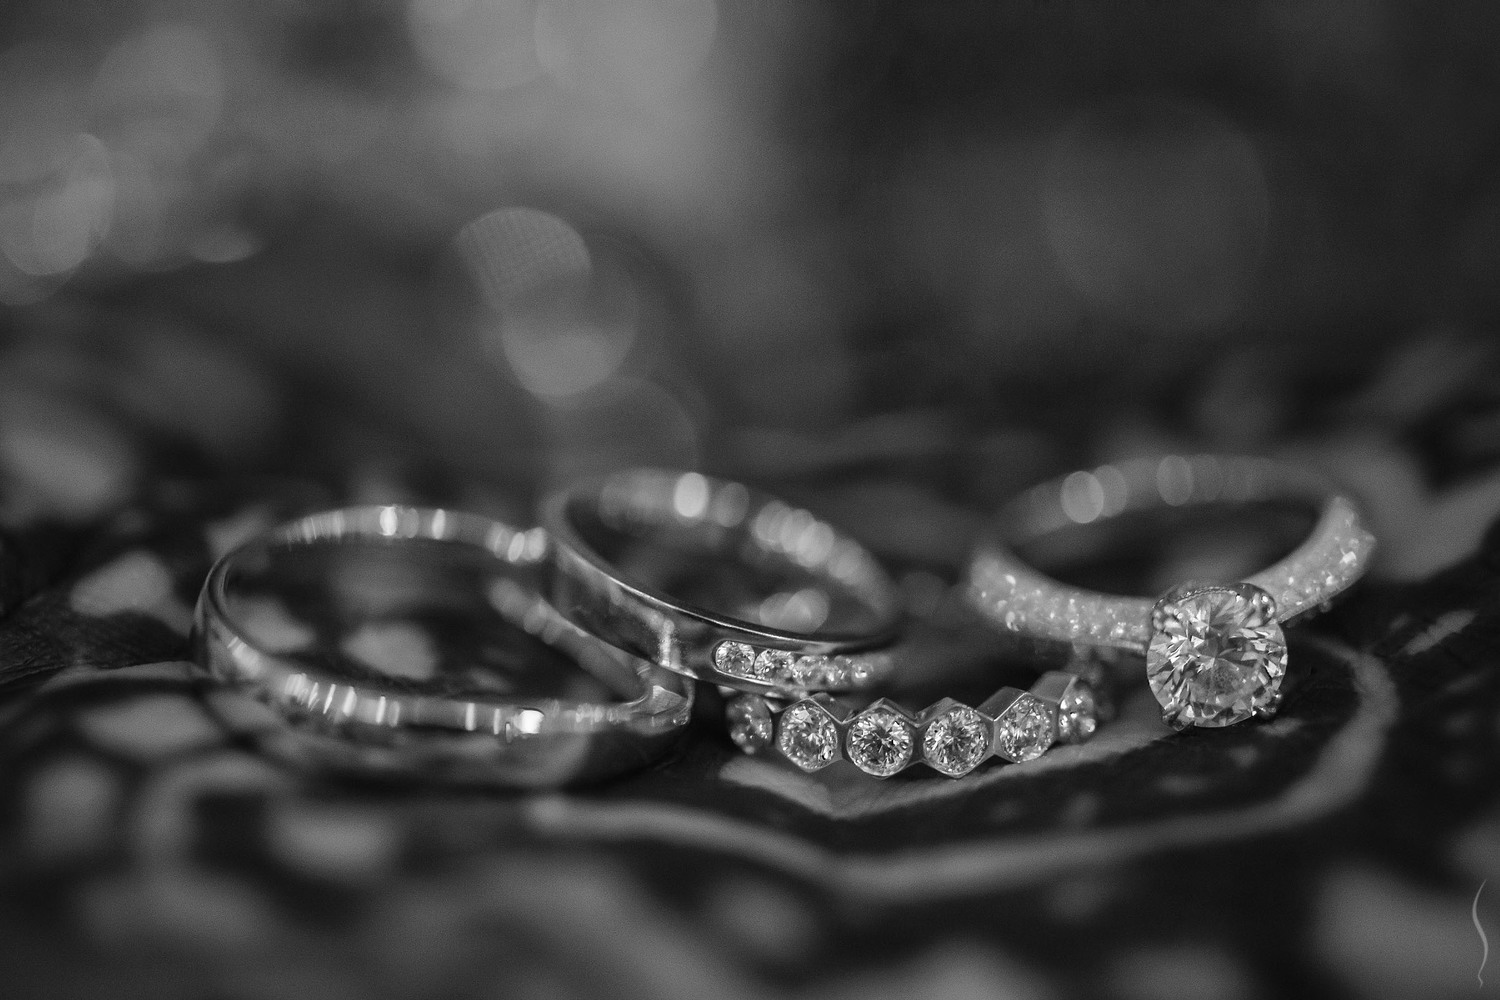 weddings sports wedding bands Wedding bands and engagement rings over the bride s Henna stained hand in SIA Sports Club